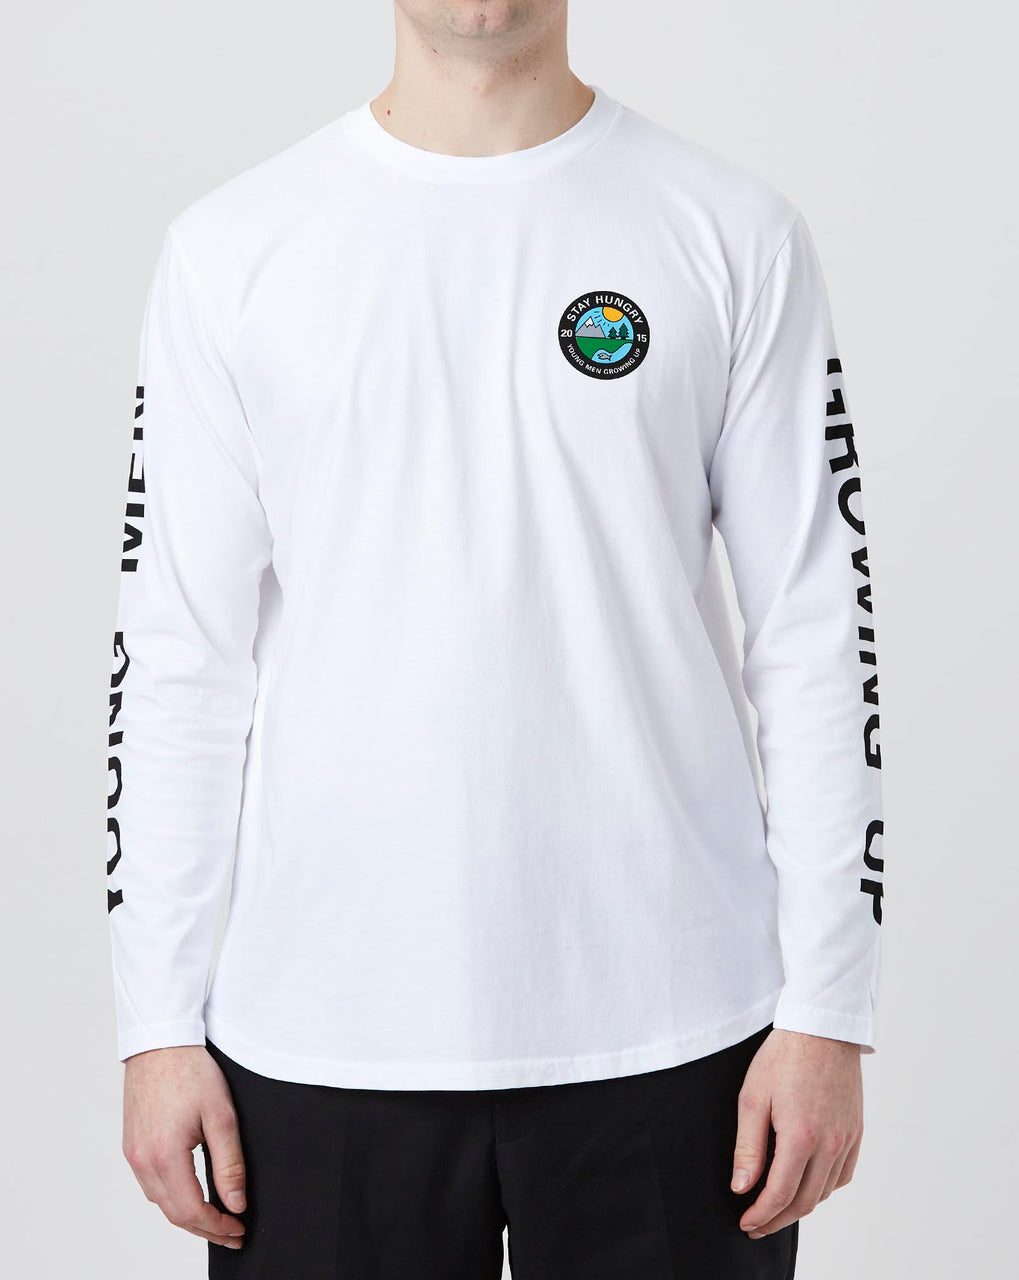 Stay Hungry YMGU® Longsleeve (White)